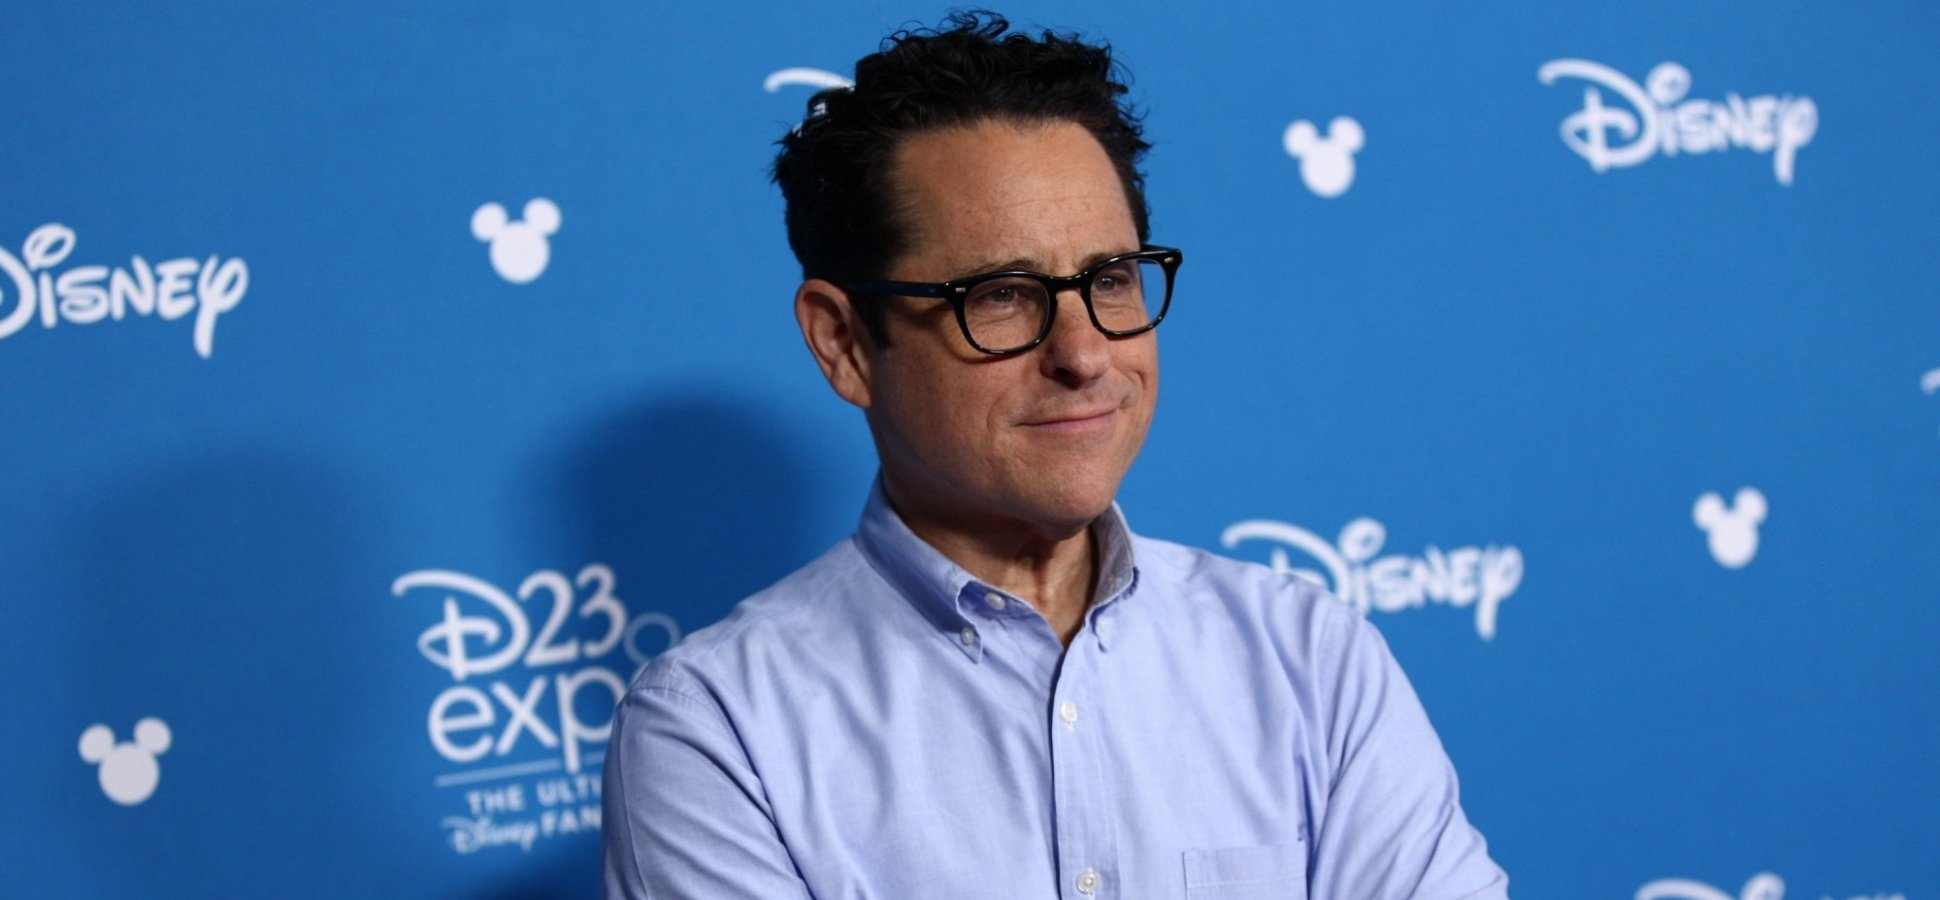 Apple's $500 Million Offer Wasn't Enough to Win Over JJ Abrams. Here's Why Turning It Down Makes Sense